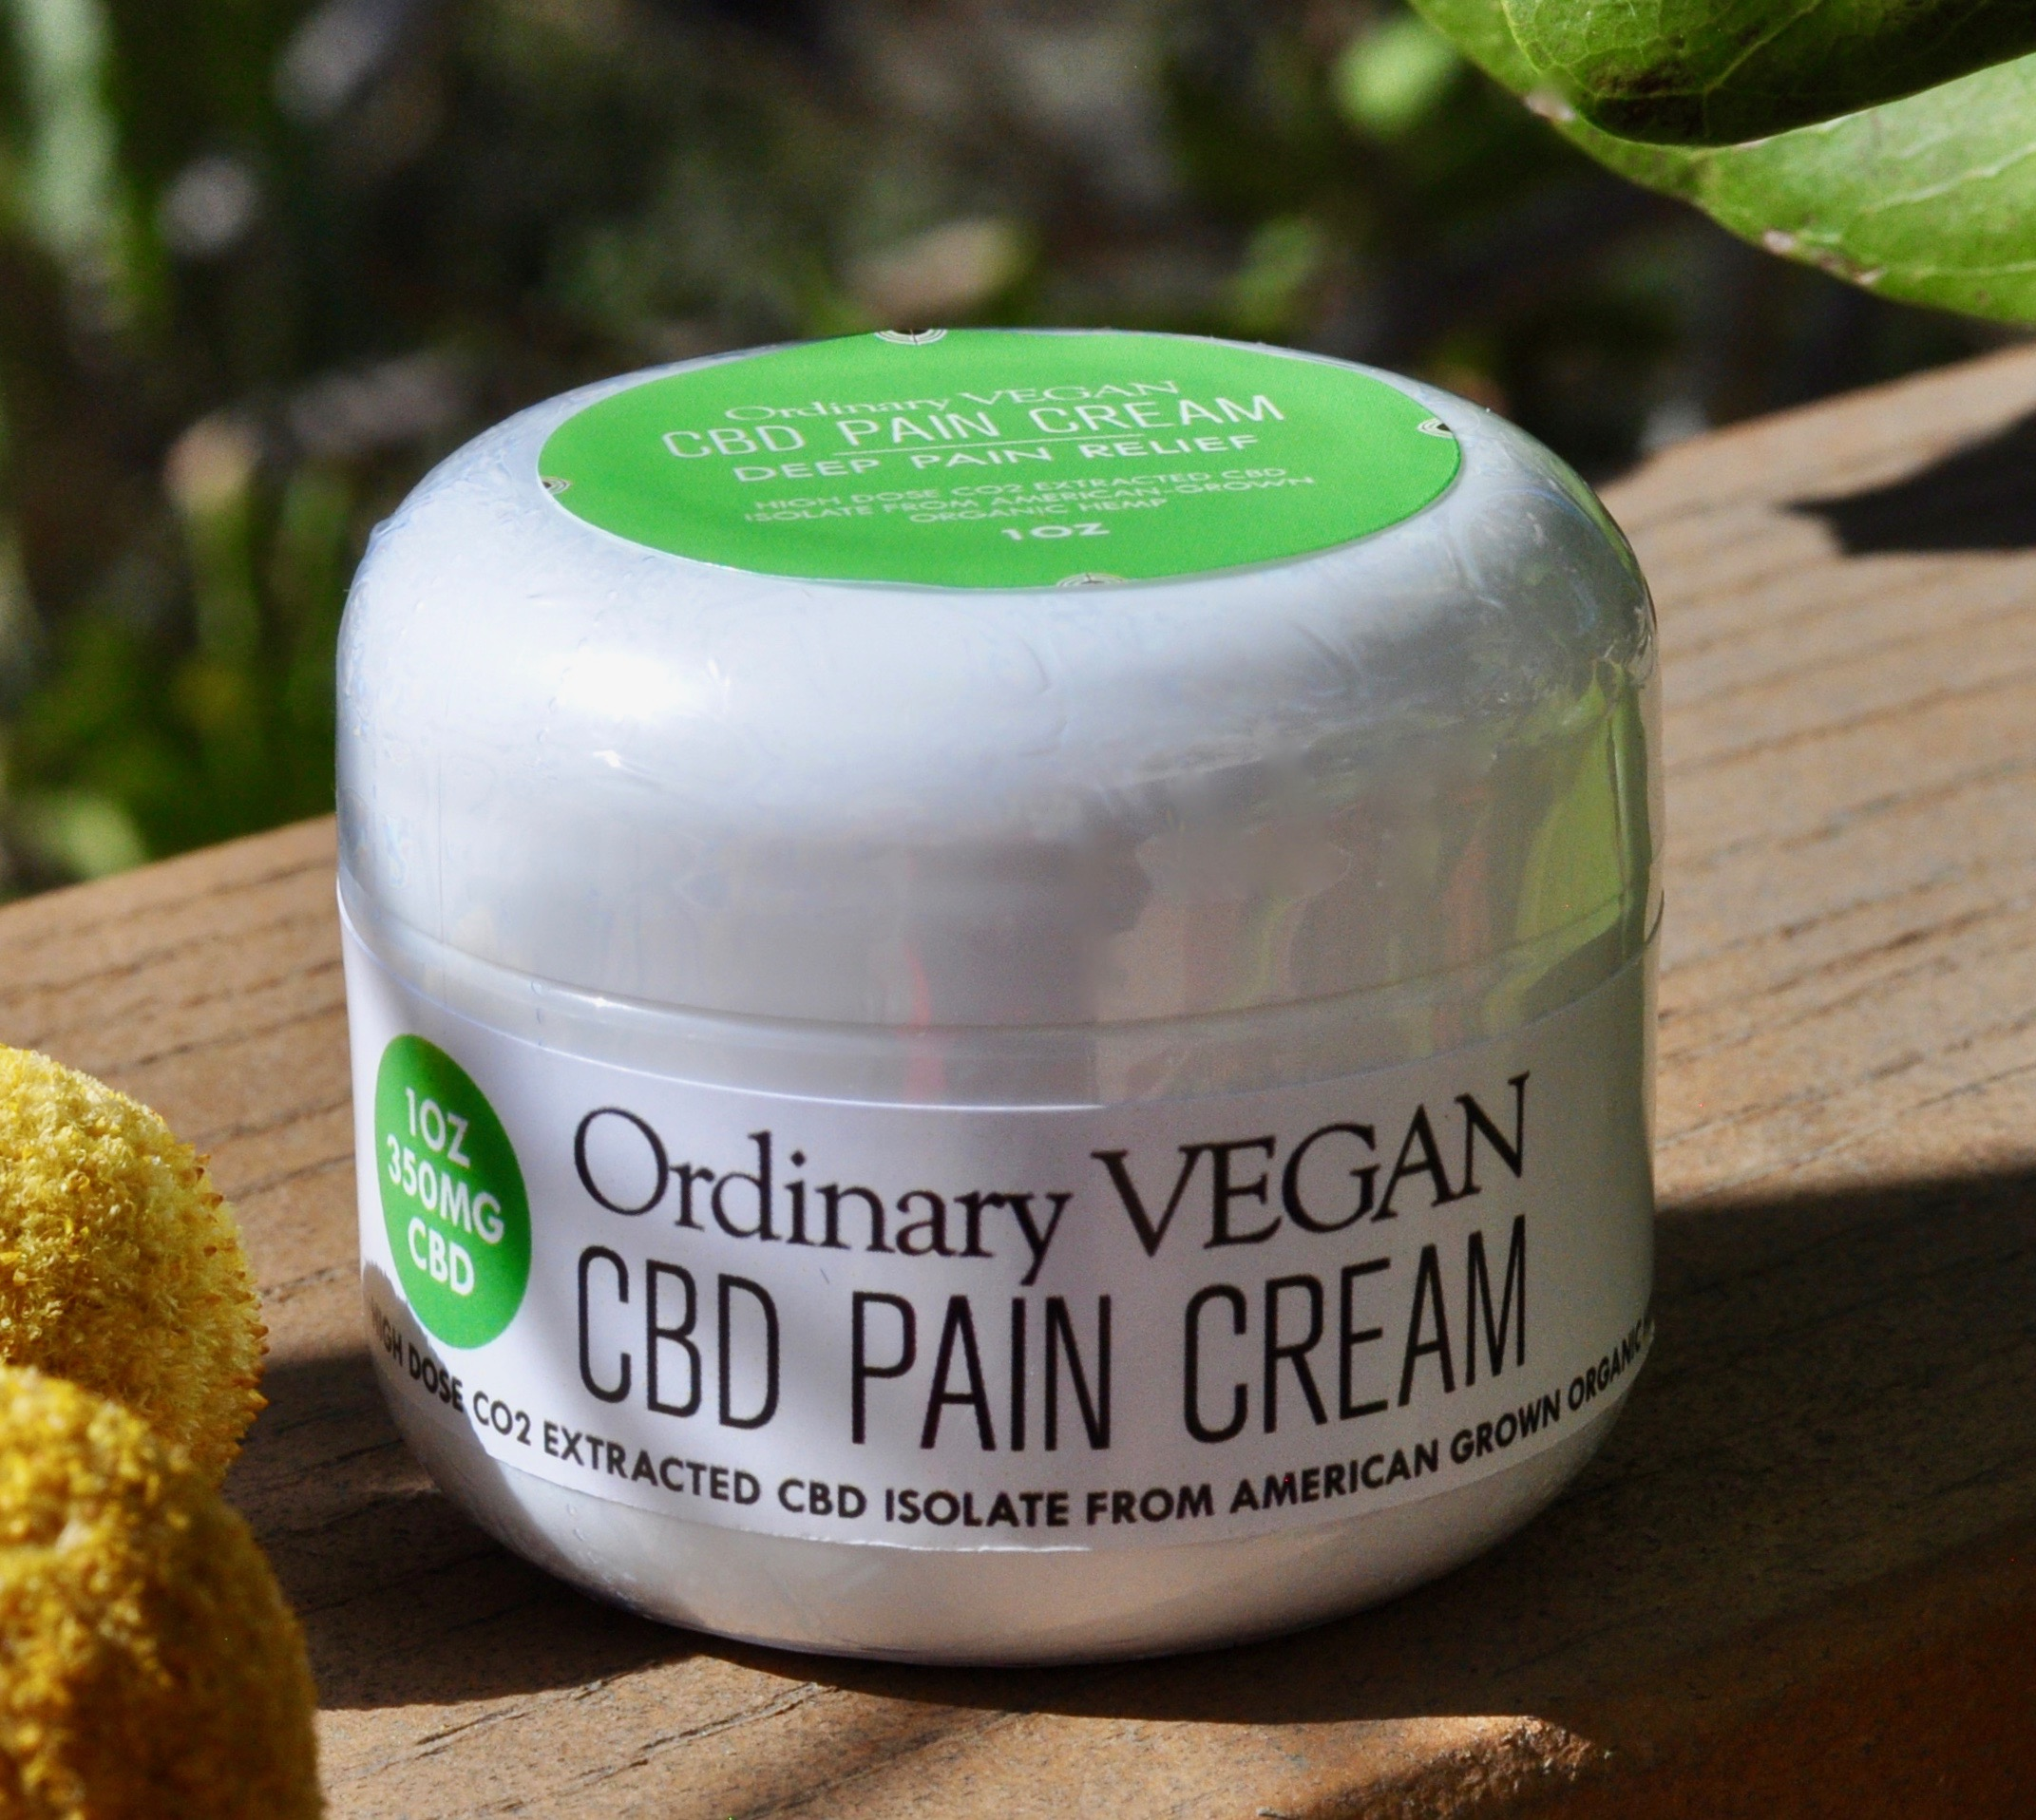 CBD pain cream formulated for sore muscle areas to heal inflammation and reduce pain. (#vegan) www.ordinaryvegan.net